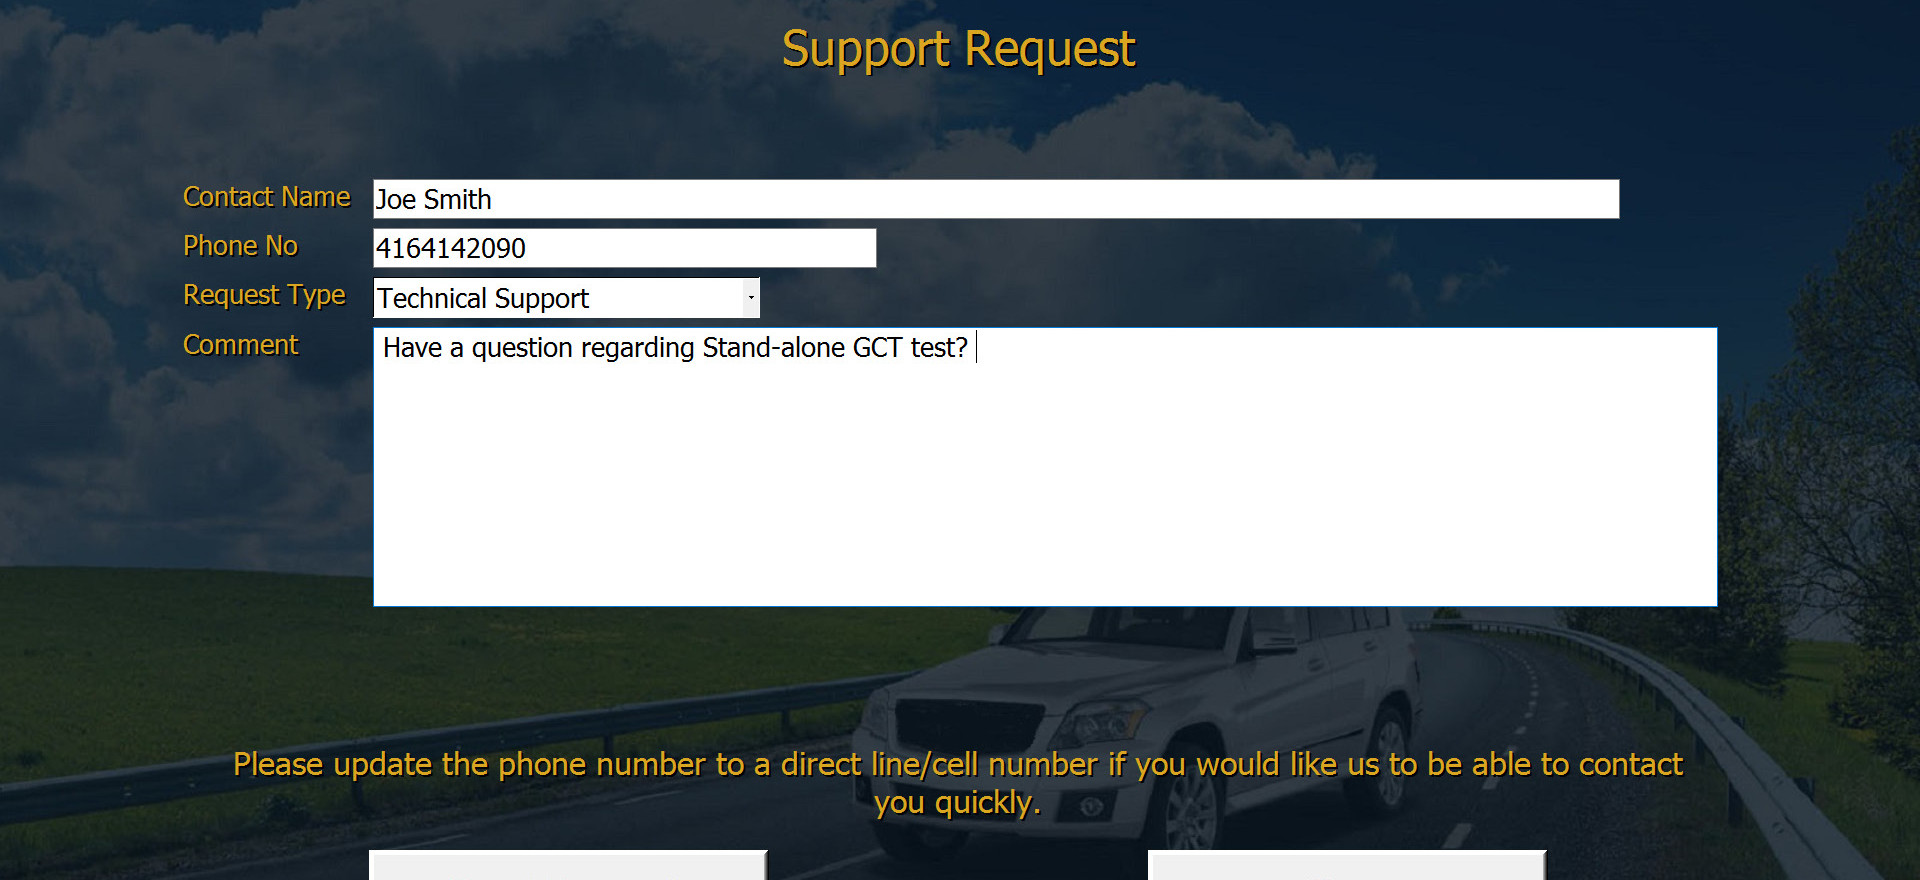 Got a question, issue, or good idea? Just text us from your machine!